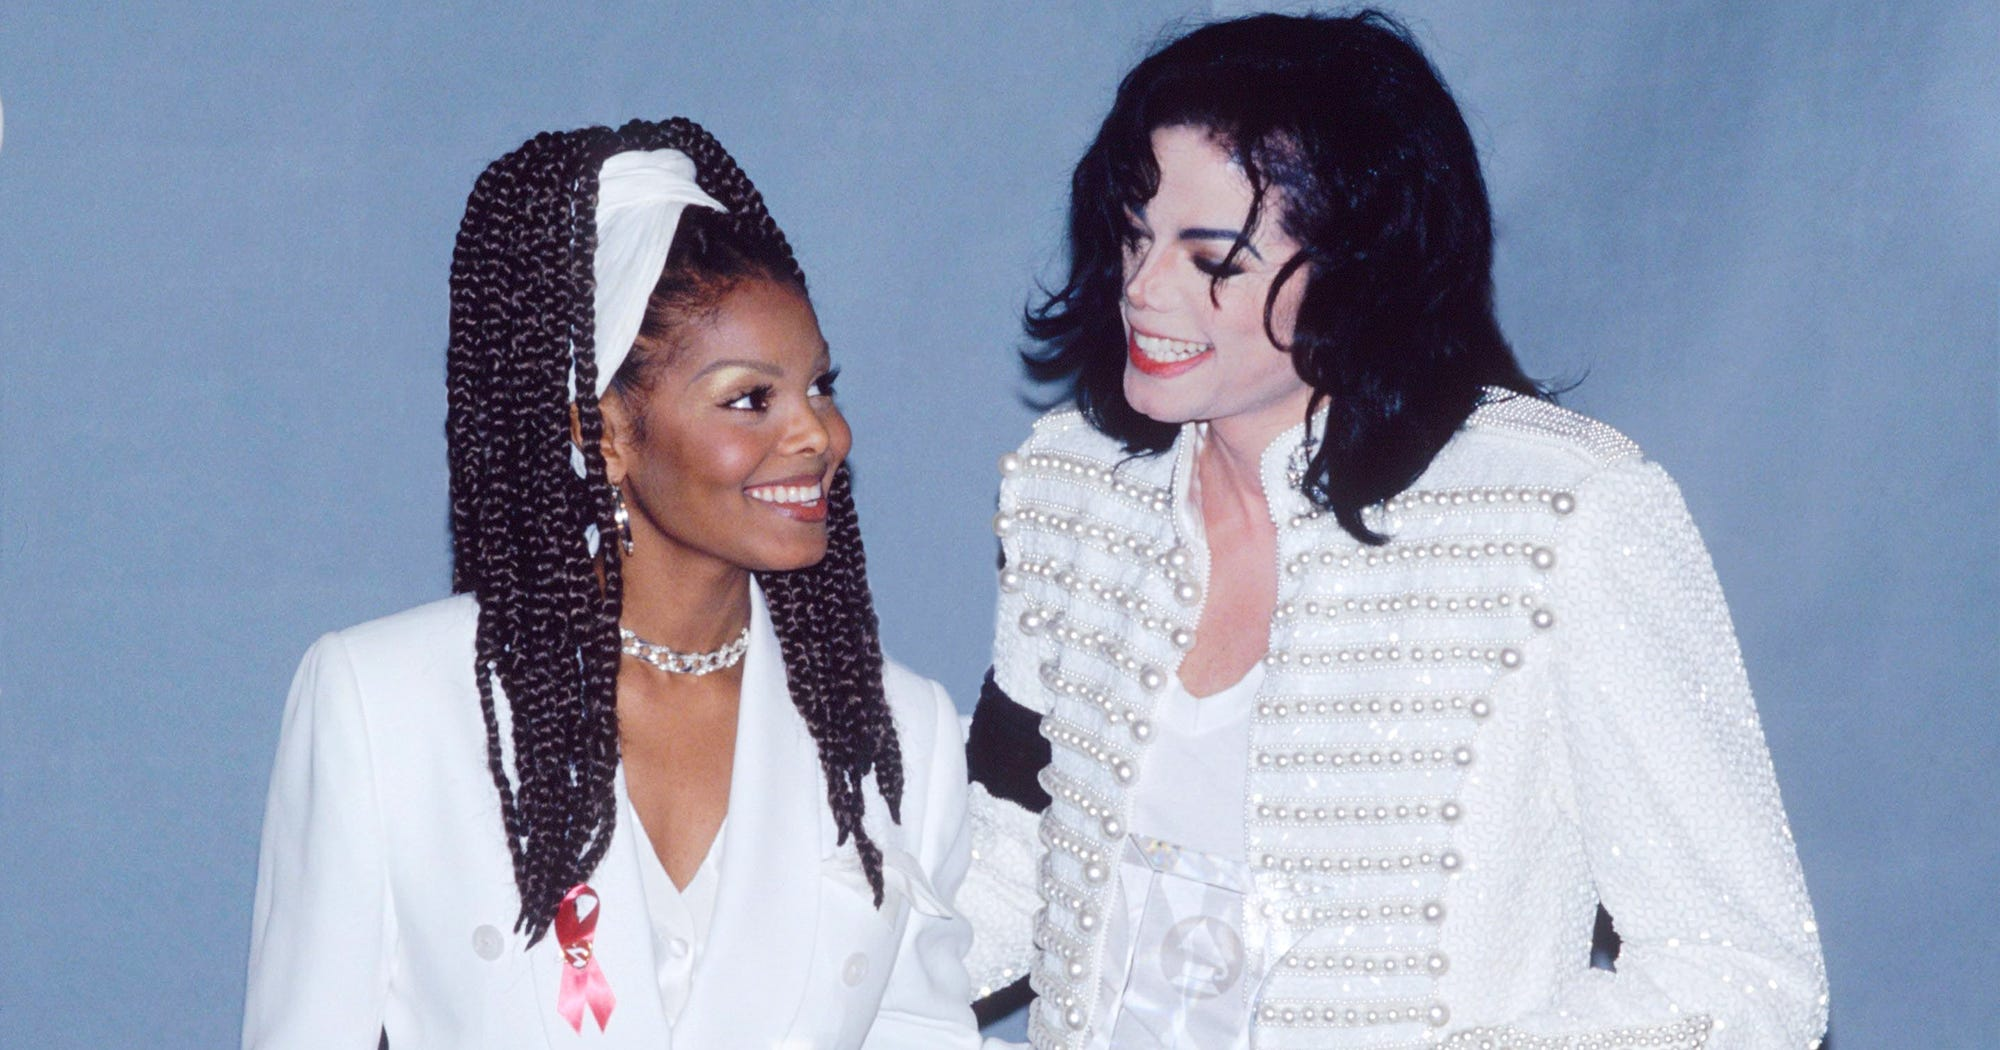 Janet Jackson Remade An Iconic Michael Jackson Moment For Her Late Brother's 60th Birthday